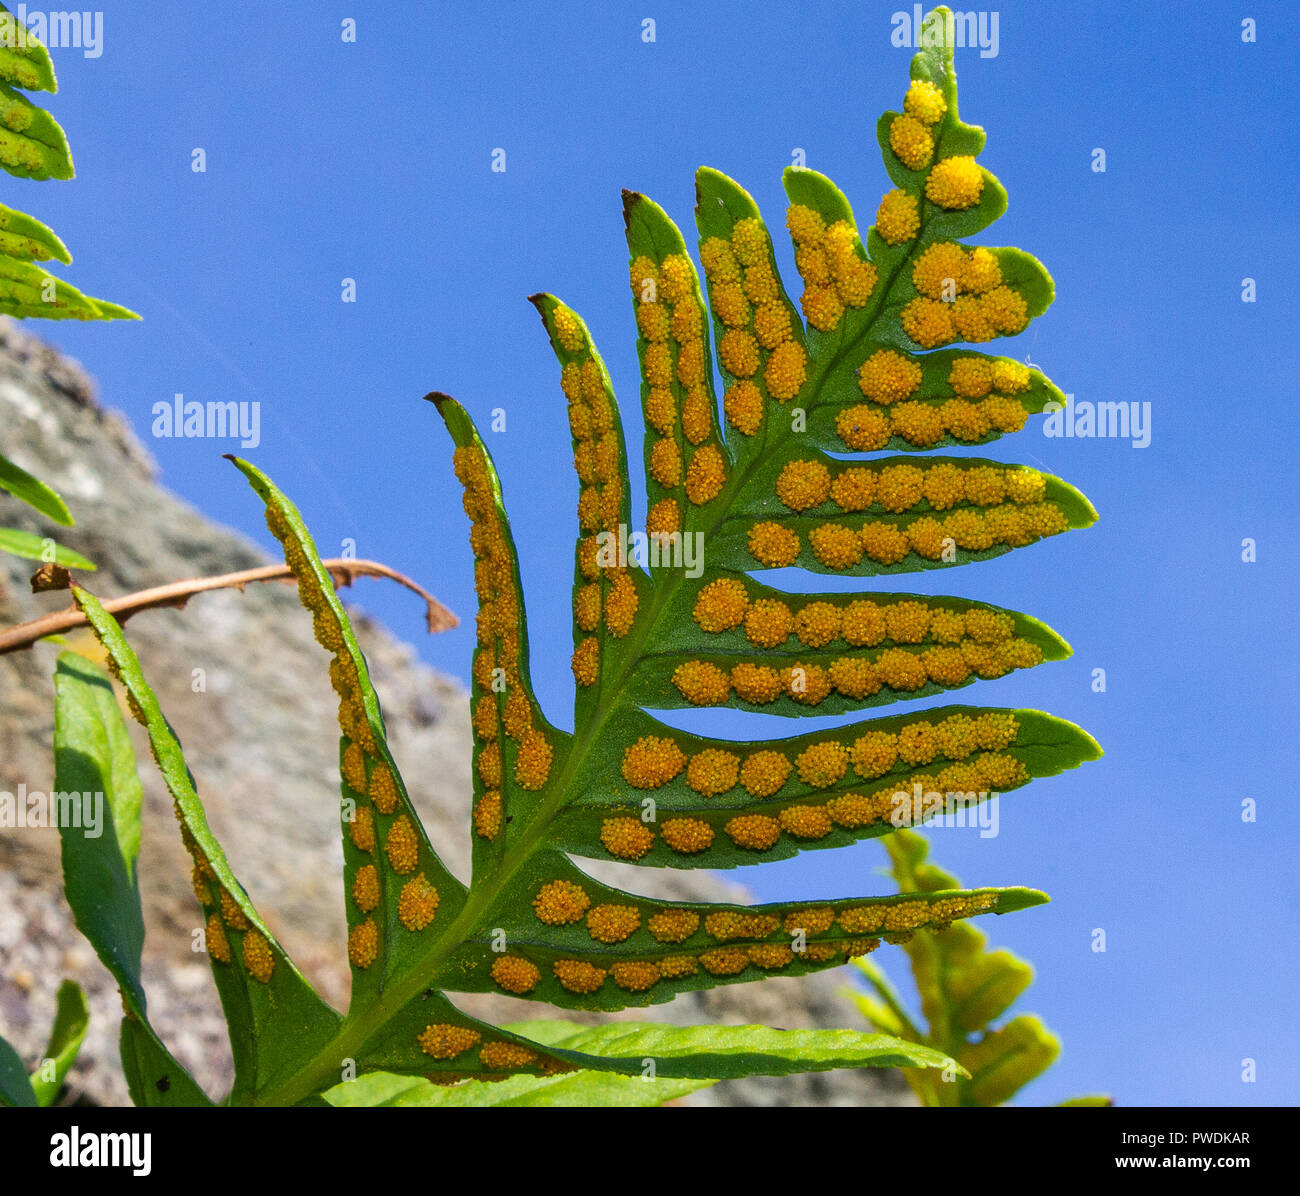 close-up-of-fern-spores-on-the-underside-of-a-fern-leaf-PWDKAR.jpg